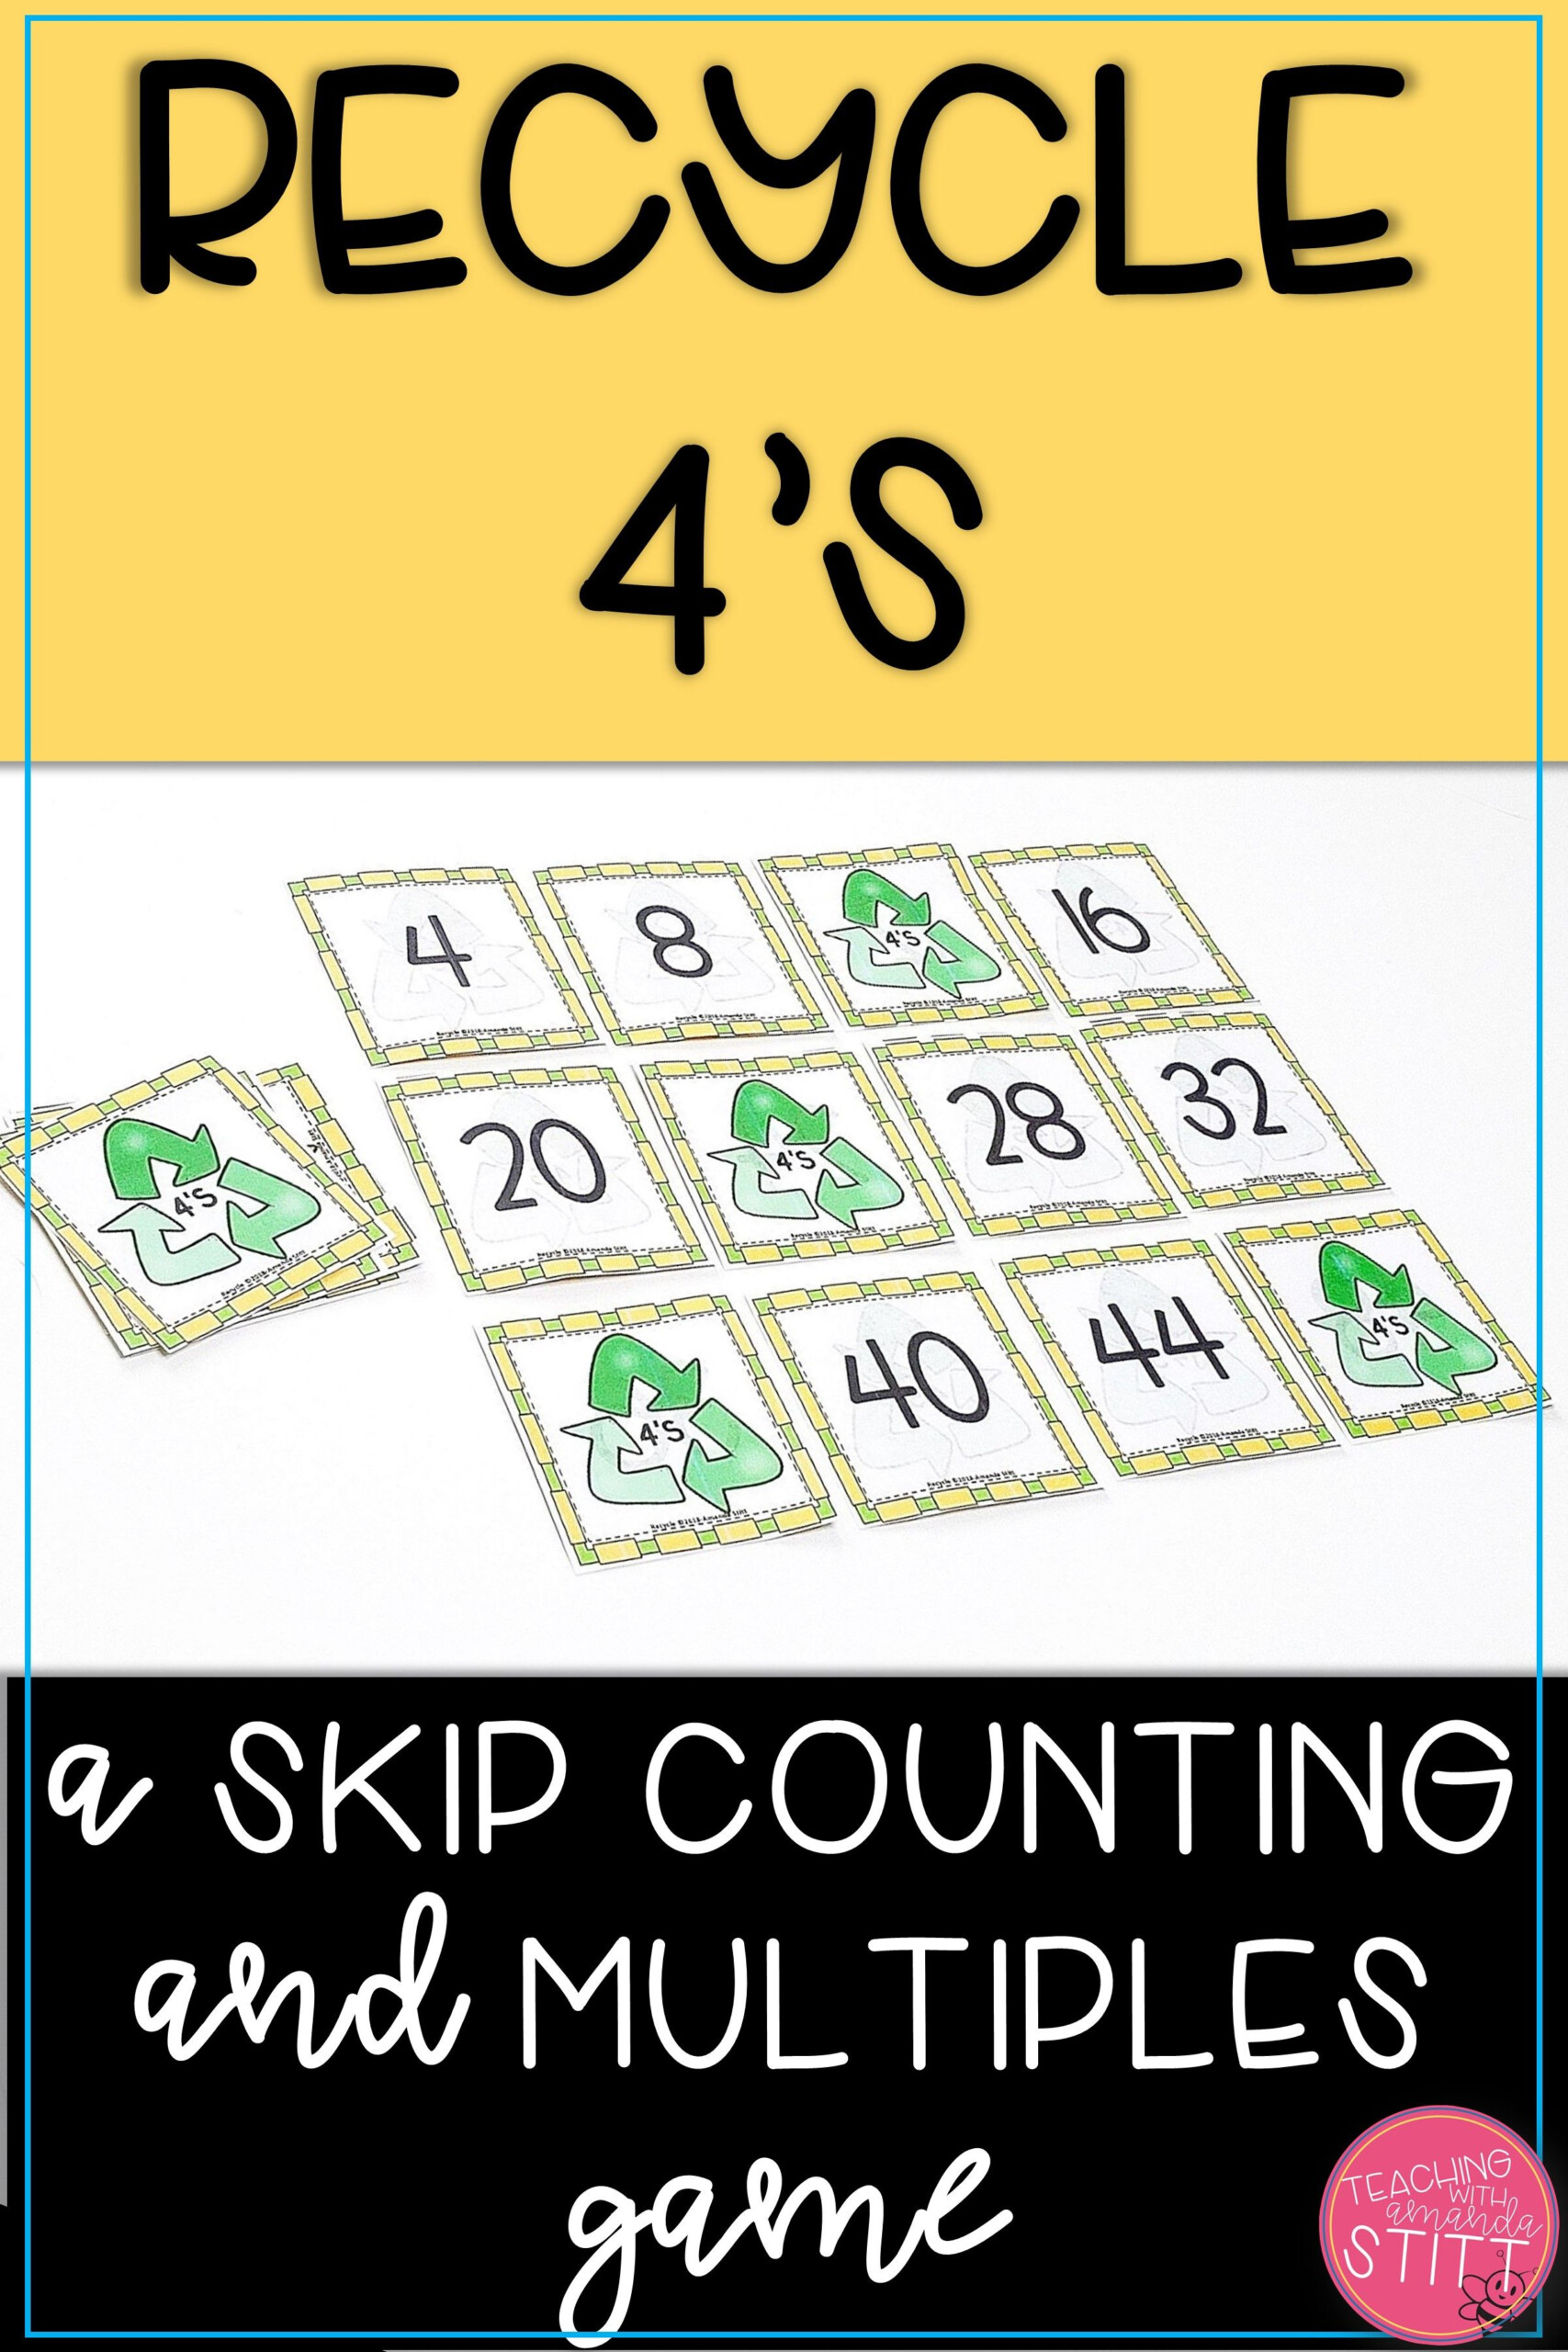 Multiples Of 4 Game   Multiplication Facts Games, Math Facts